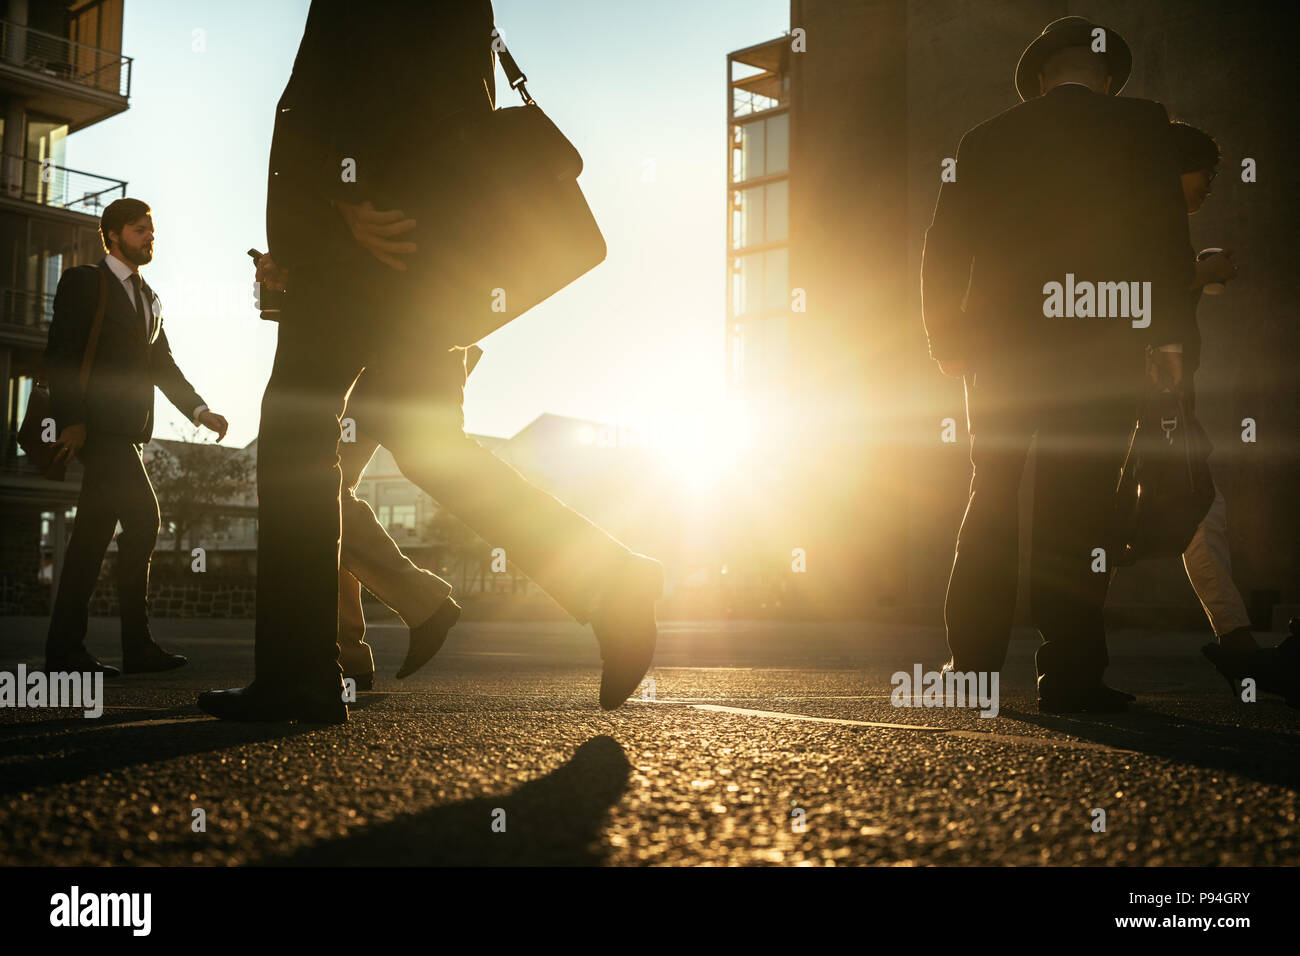 People walking on city street with sun flare in the background. Men commuting to office early in the morning carrying office bags. - Stock Image